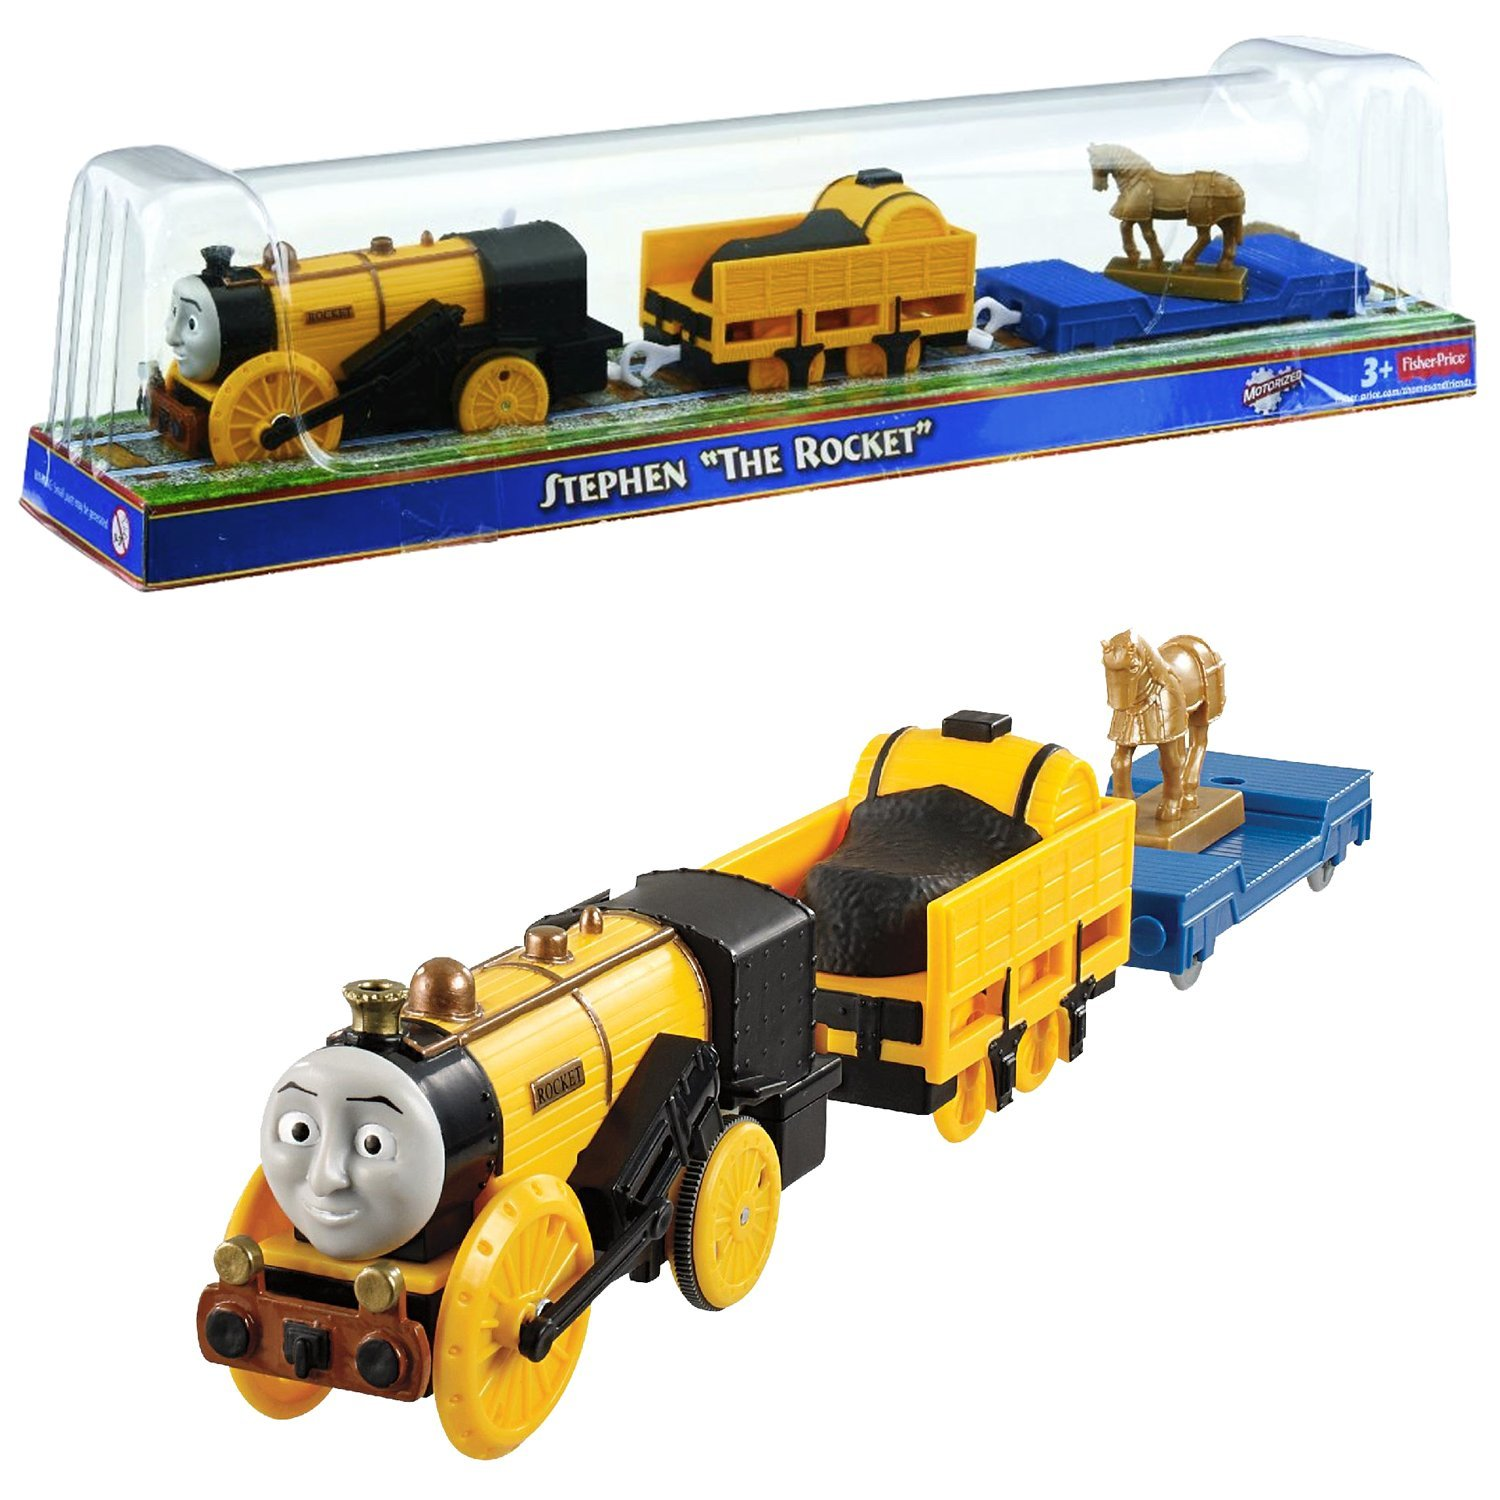 """Fisher Price Year 2013 Thomas and Friends As Seen On """"King of the Railway"""" DVD Series Trackmaster Motorized Railway Battery Powered Tank Engine 3 Pack Train Set - STEPHEN """"THE ROCKET"""" with 1 Open-Top Carriage Car and 1 Flat-Bed Car with Horse Statue"""